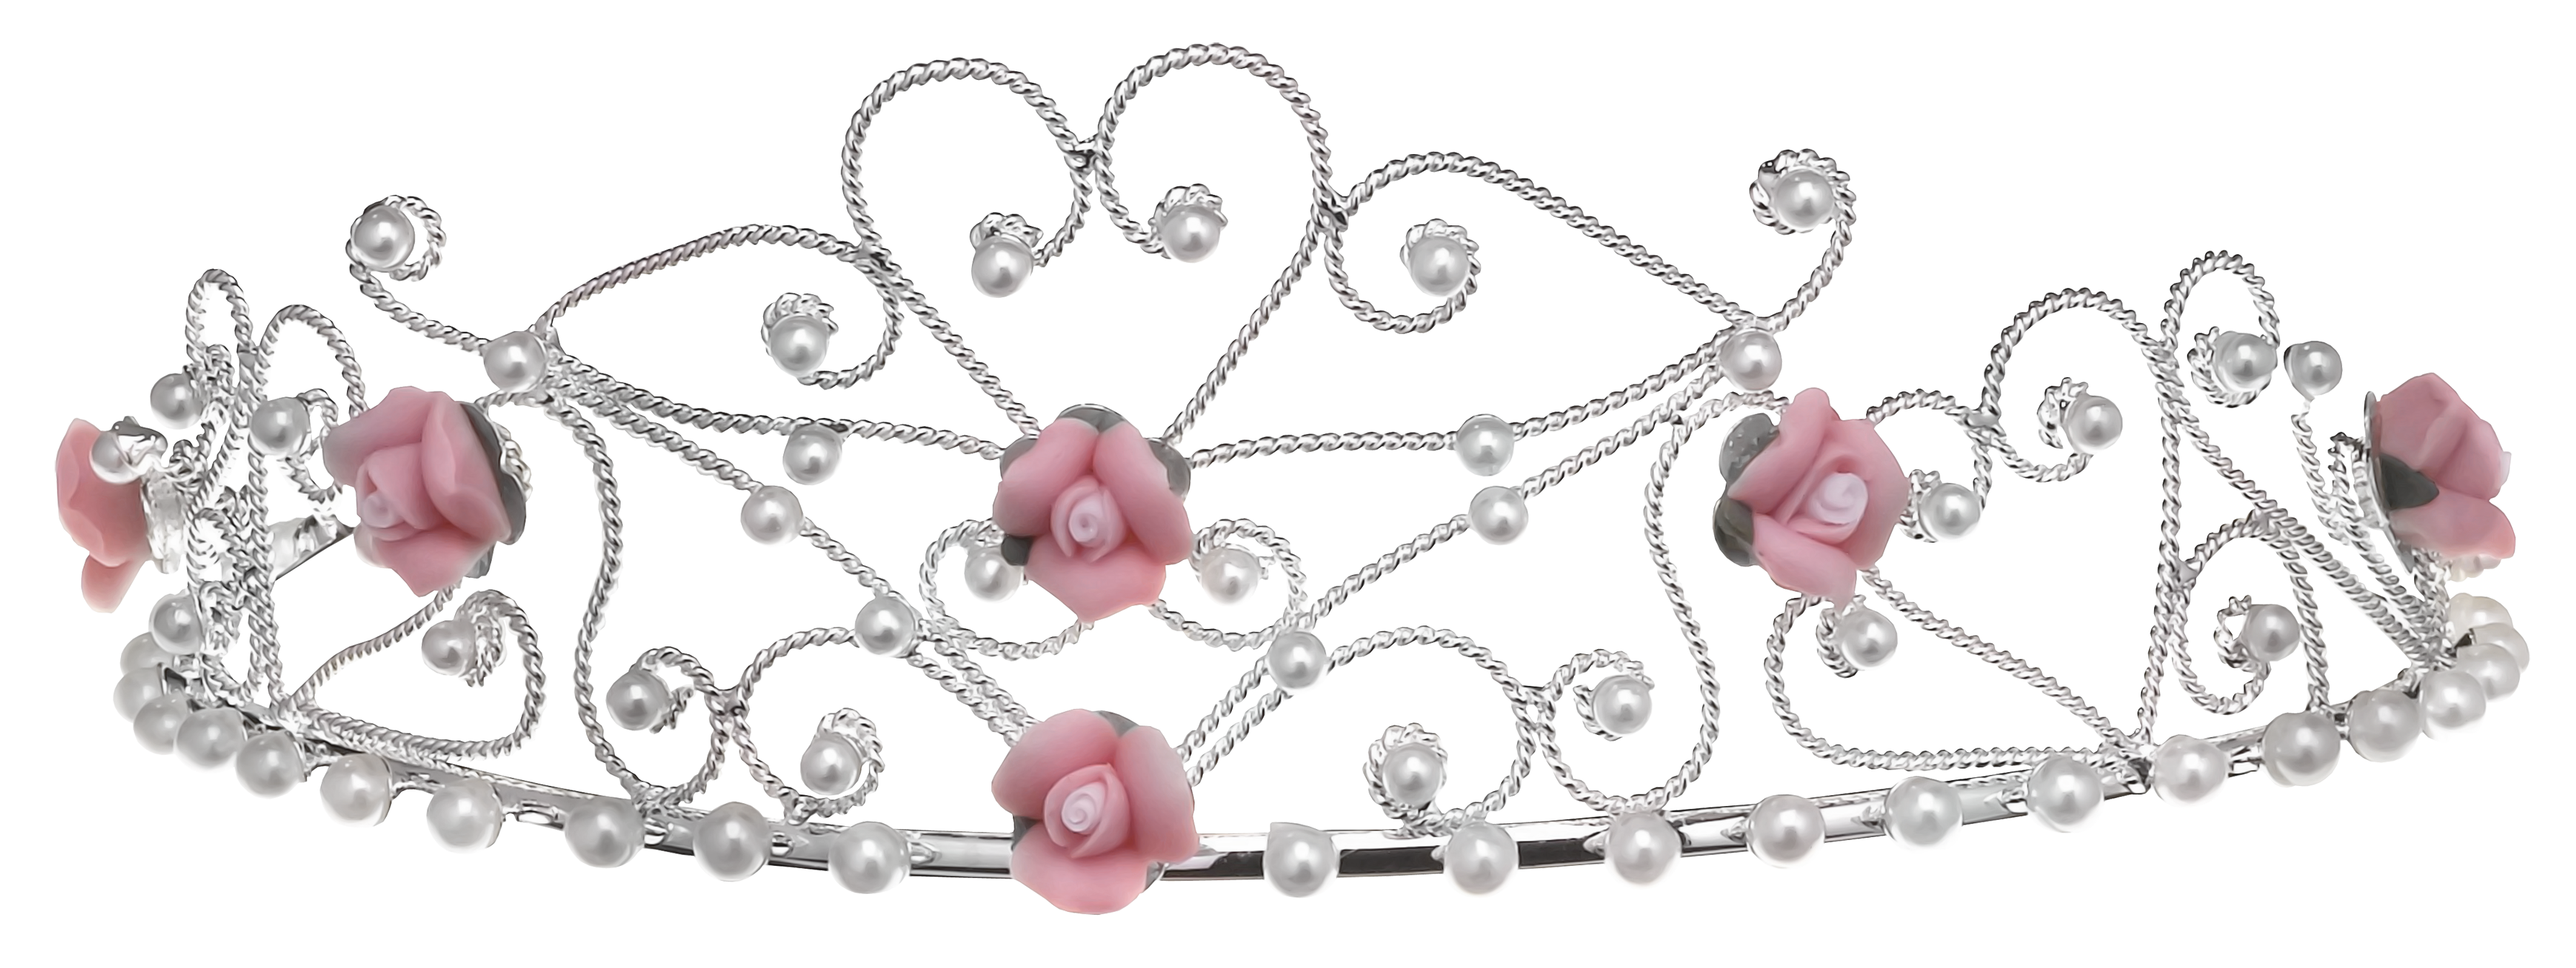 Tiara image gallery yopriceville. Flower crown png transparent banner freeuse